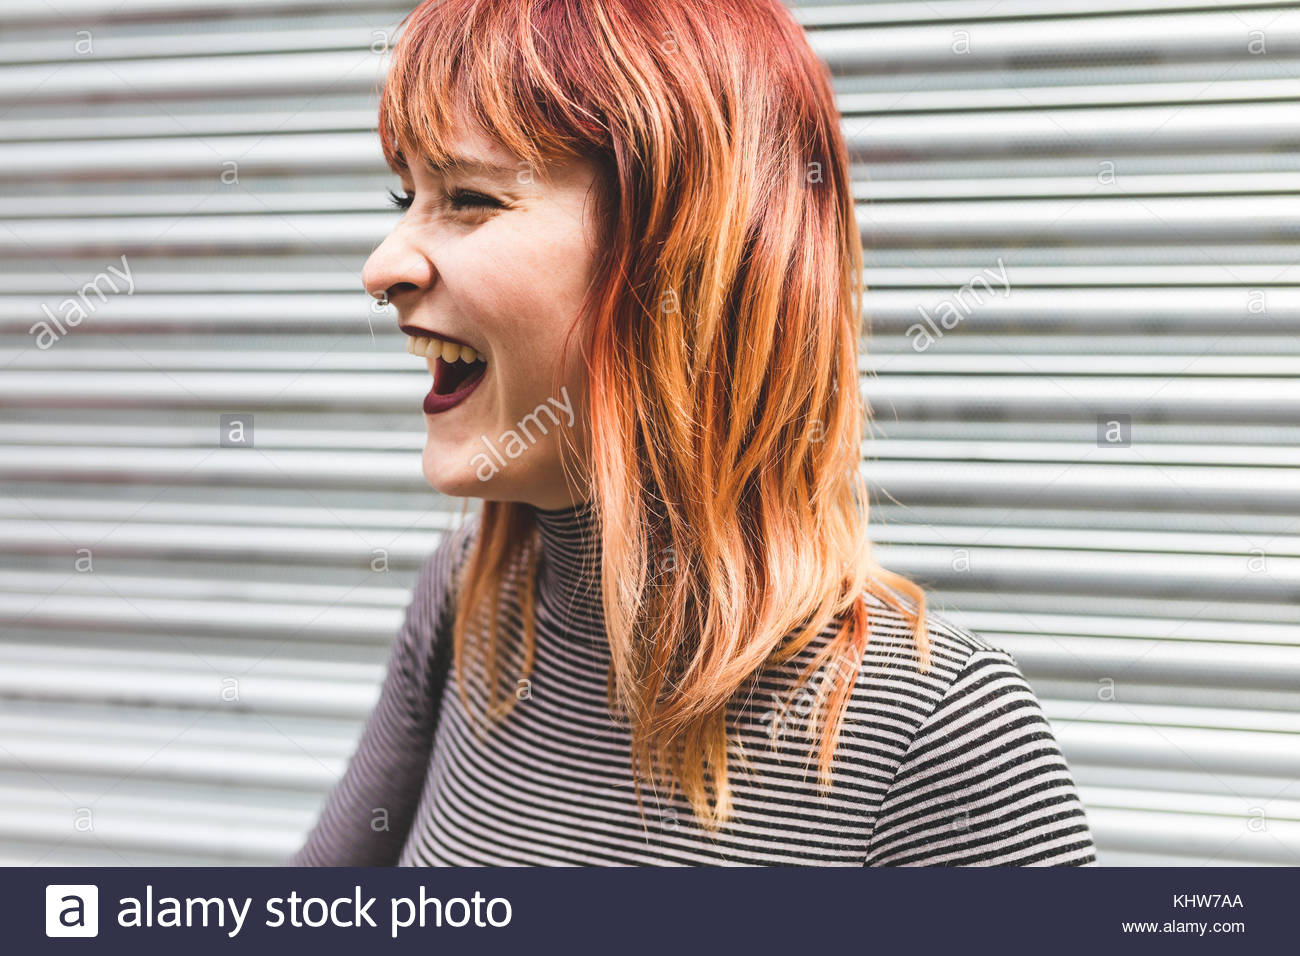 Portrait of a young woman with dyed hair, laughing - Stock Image